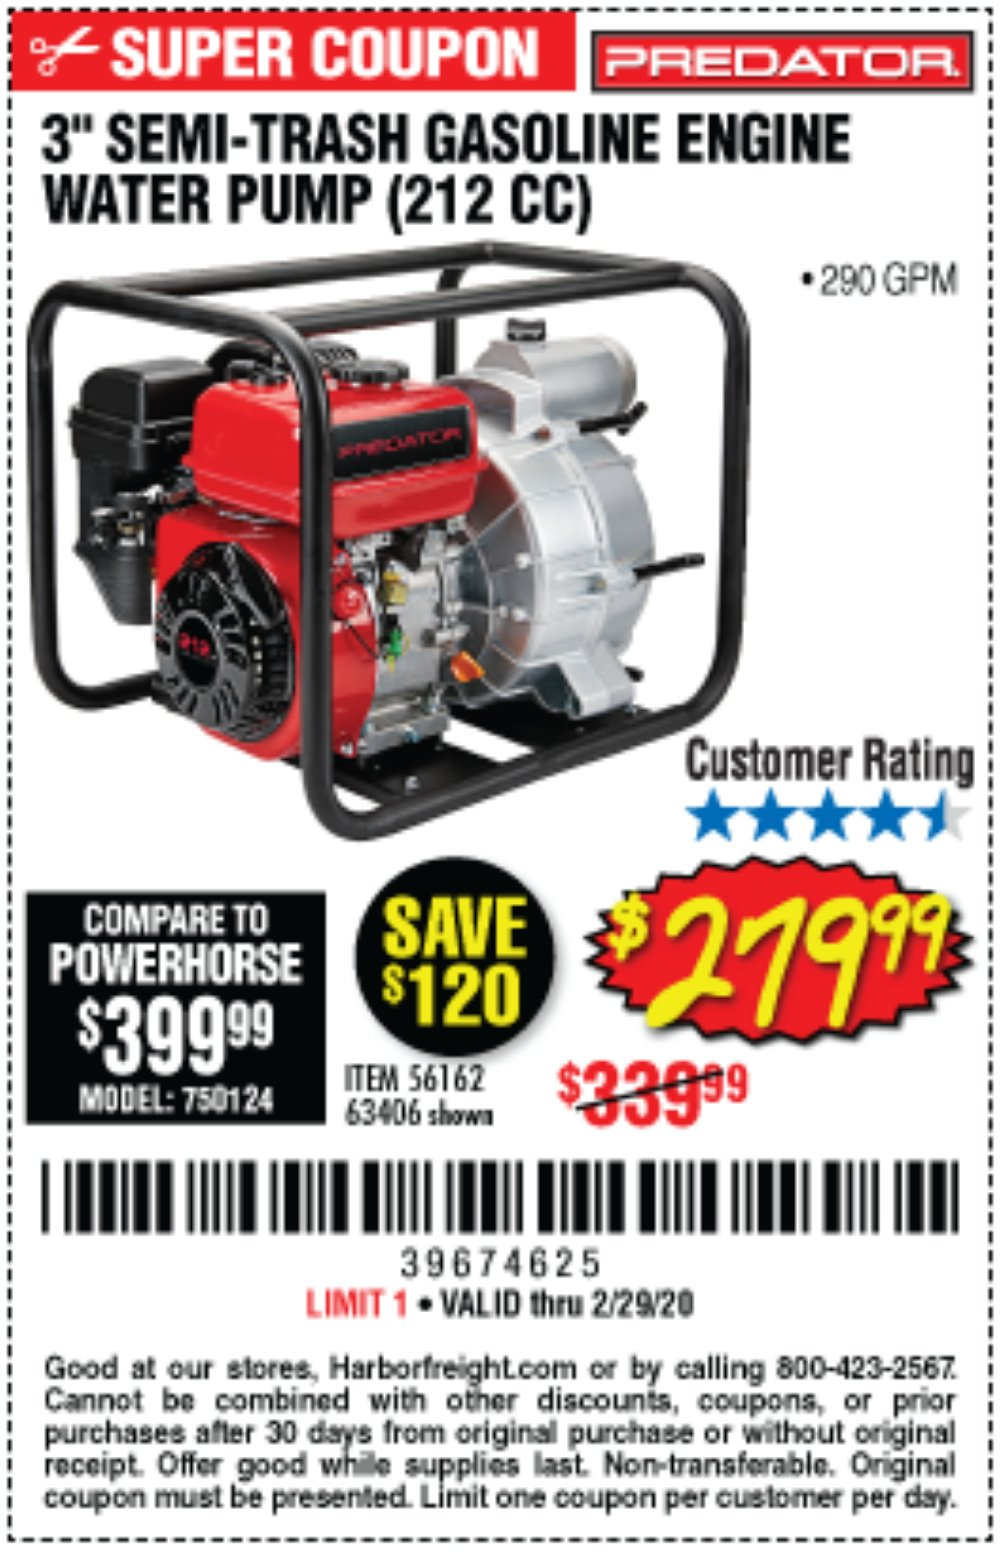 Harbor Freight Coupon, HF Coupons - 3